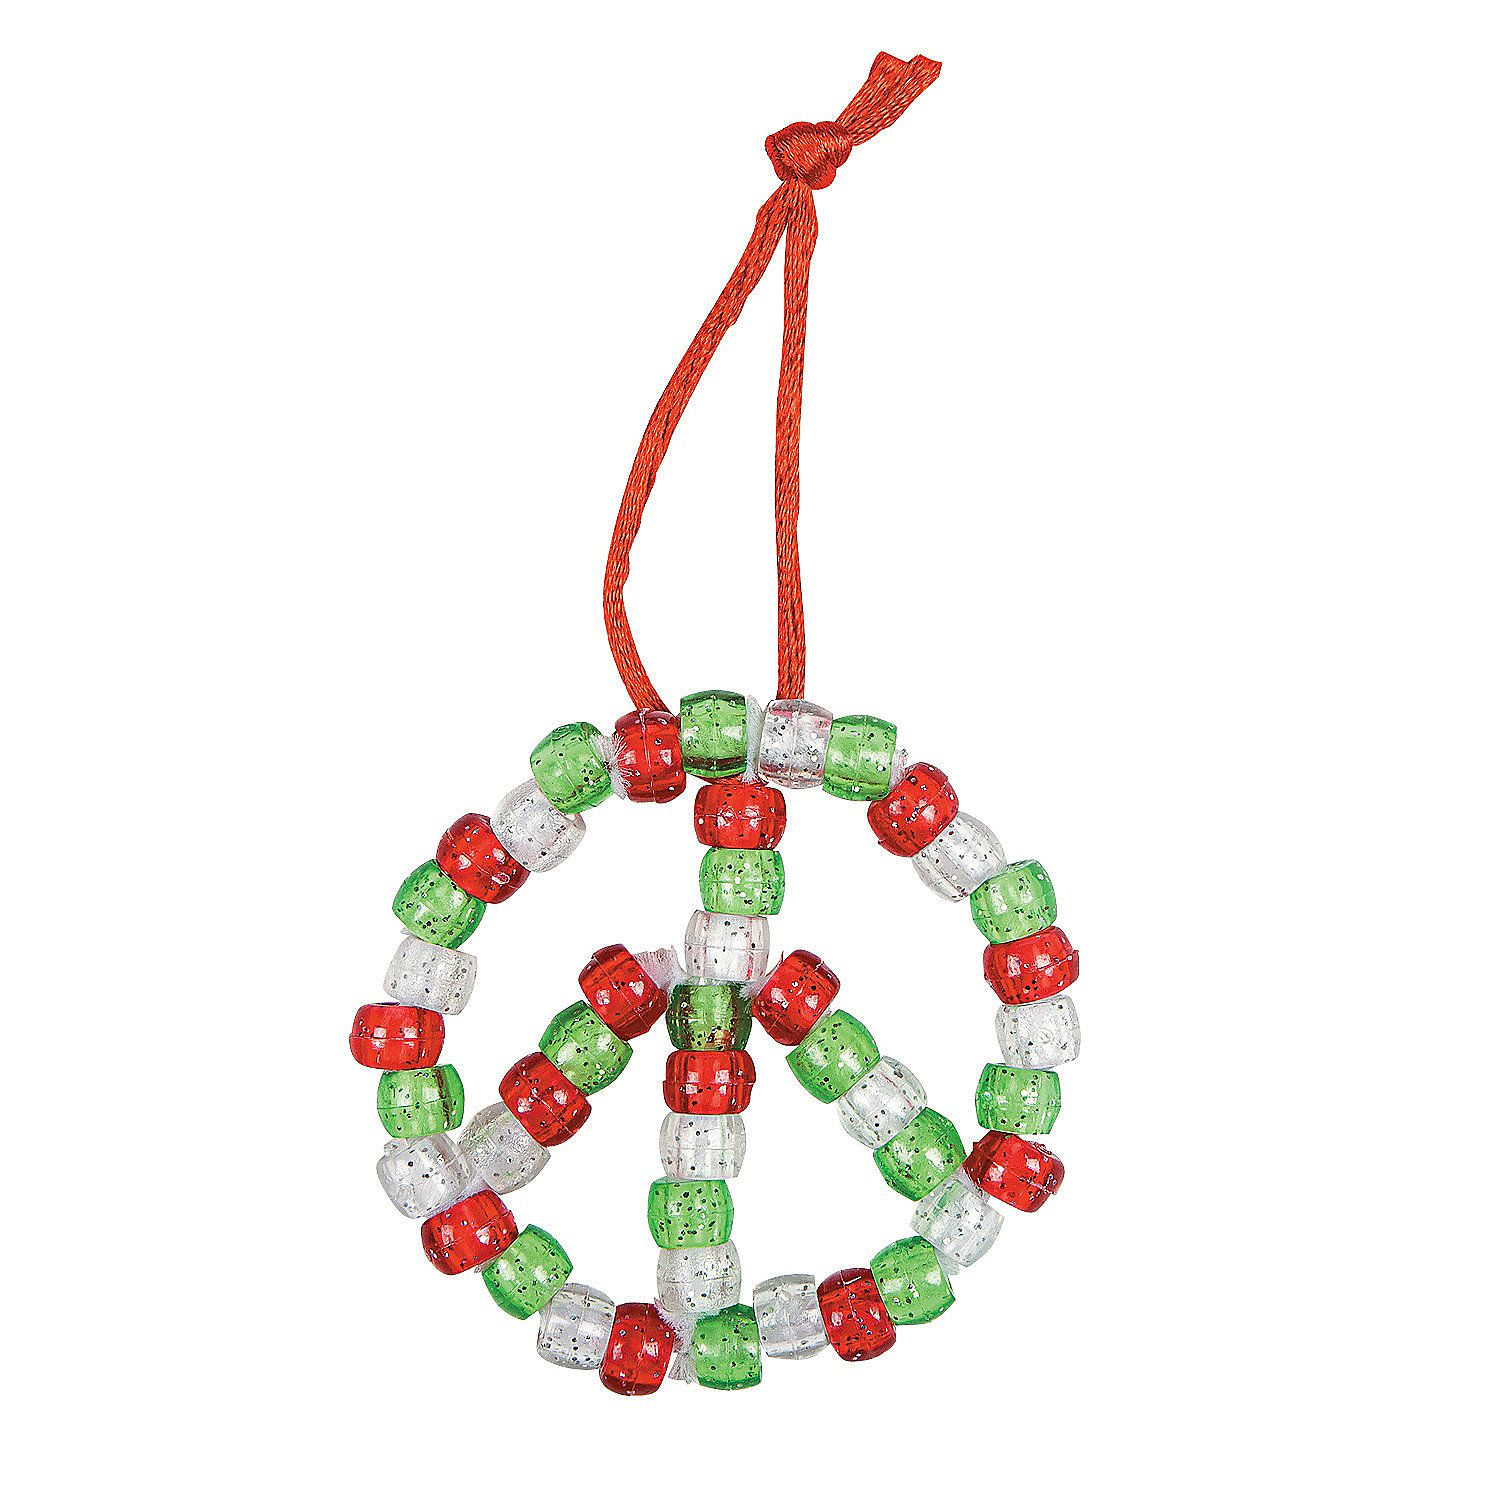 Beaded Peace Sign Ornament Craft Kit  Orientaltradingcom